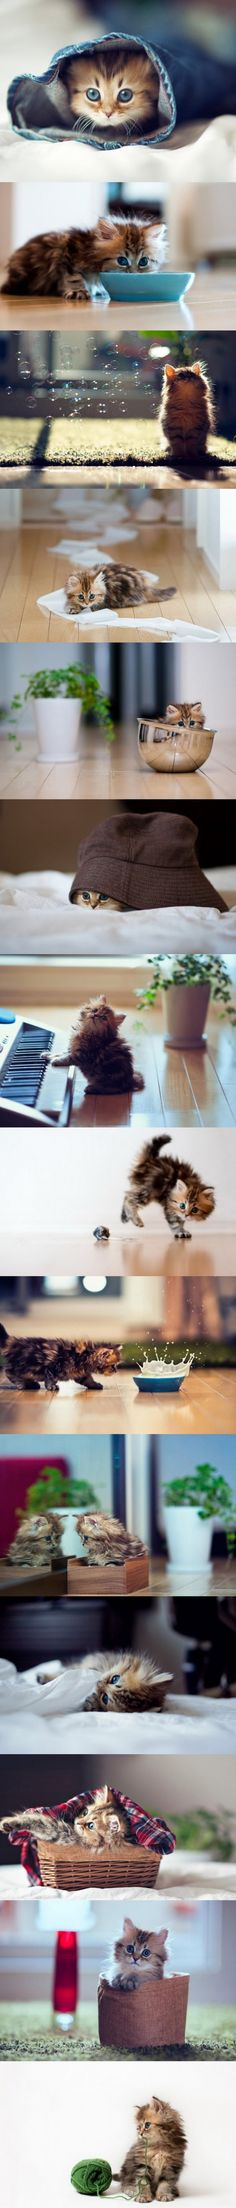 I want this kitten right now... It's so stinkin' cute!!!